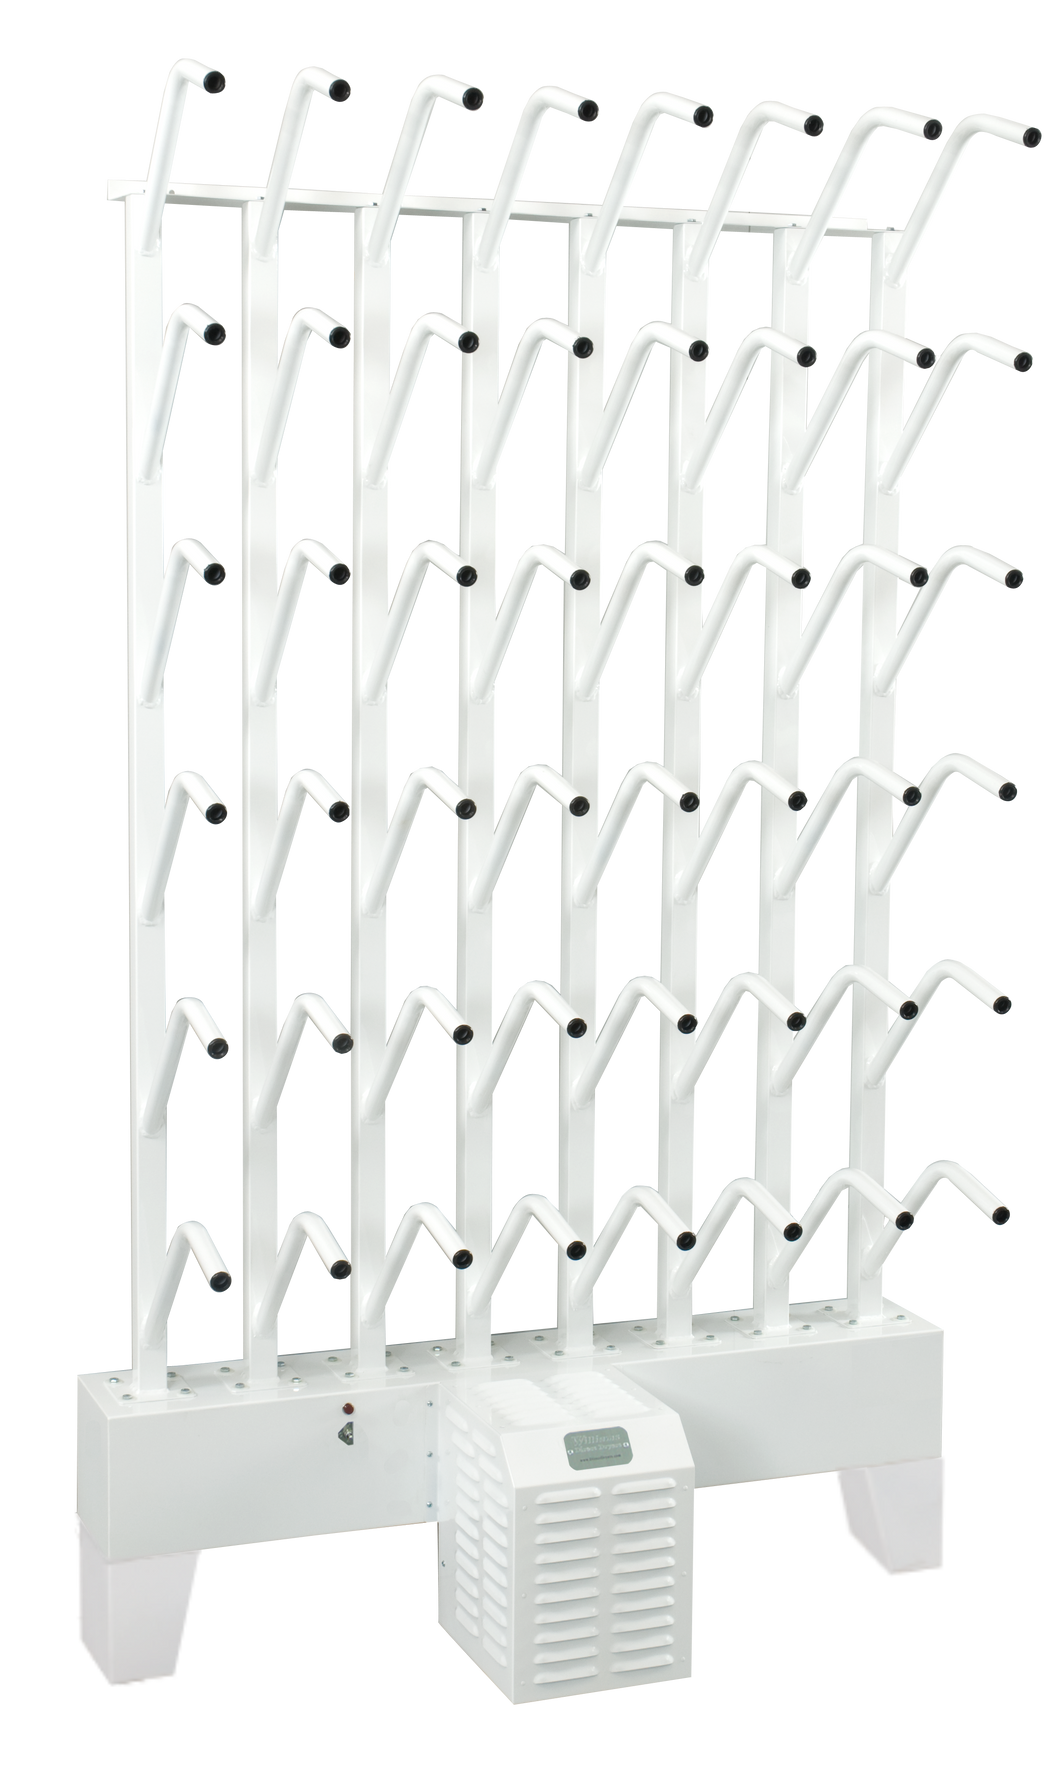 Boot Dryer, 24 pair (48 boots) Models: W24 & W24E, E Version for high top boots (16